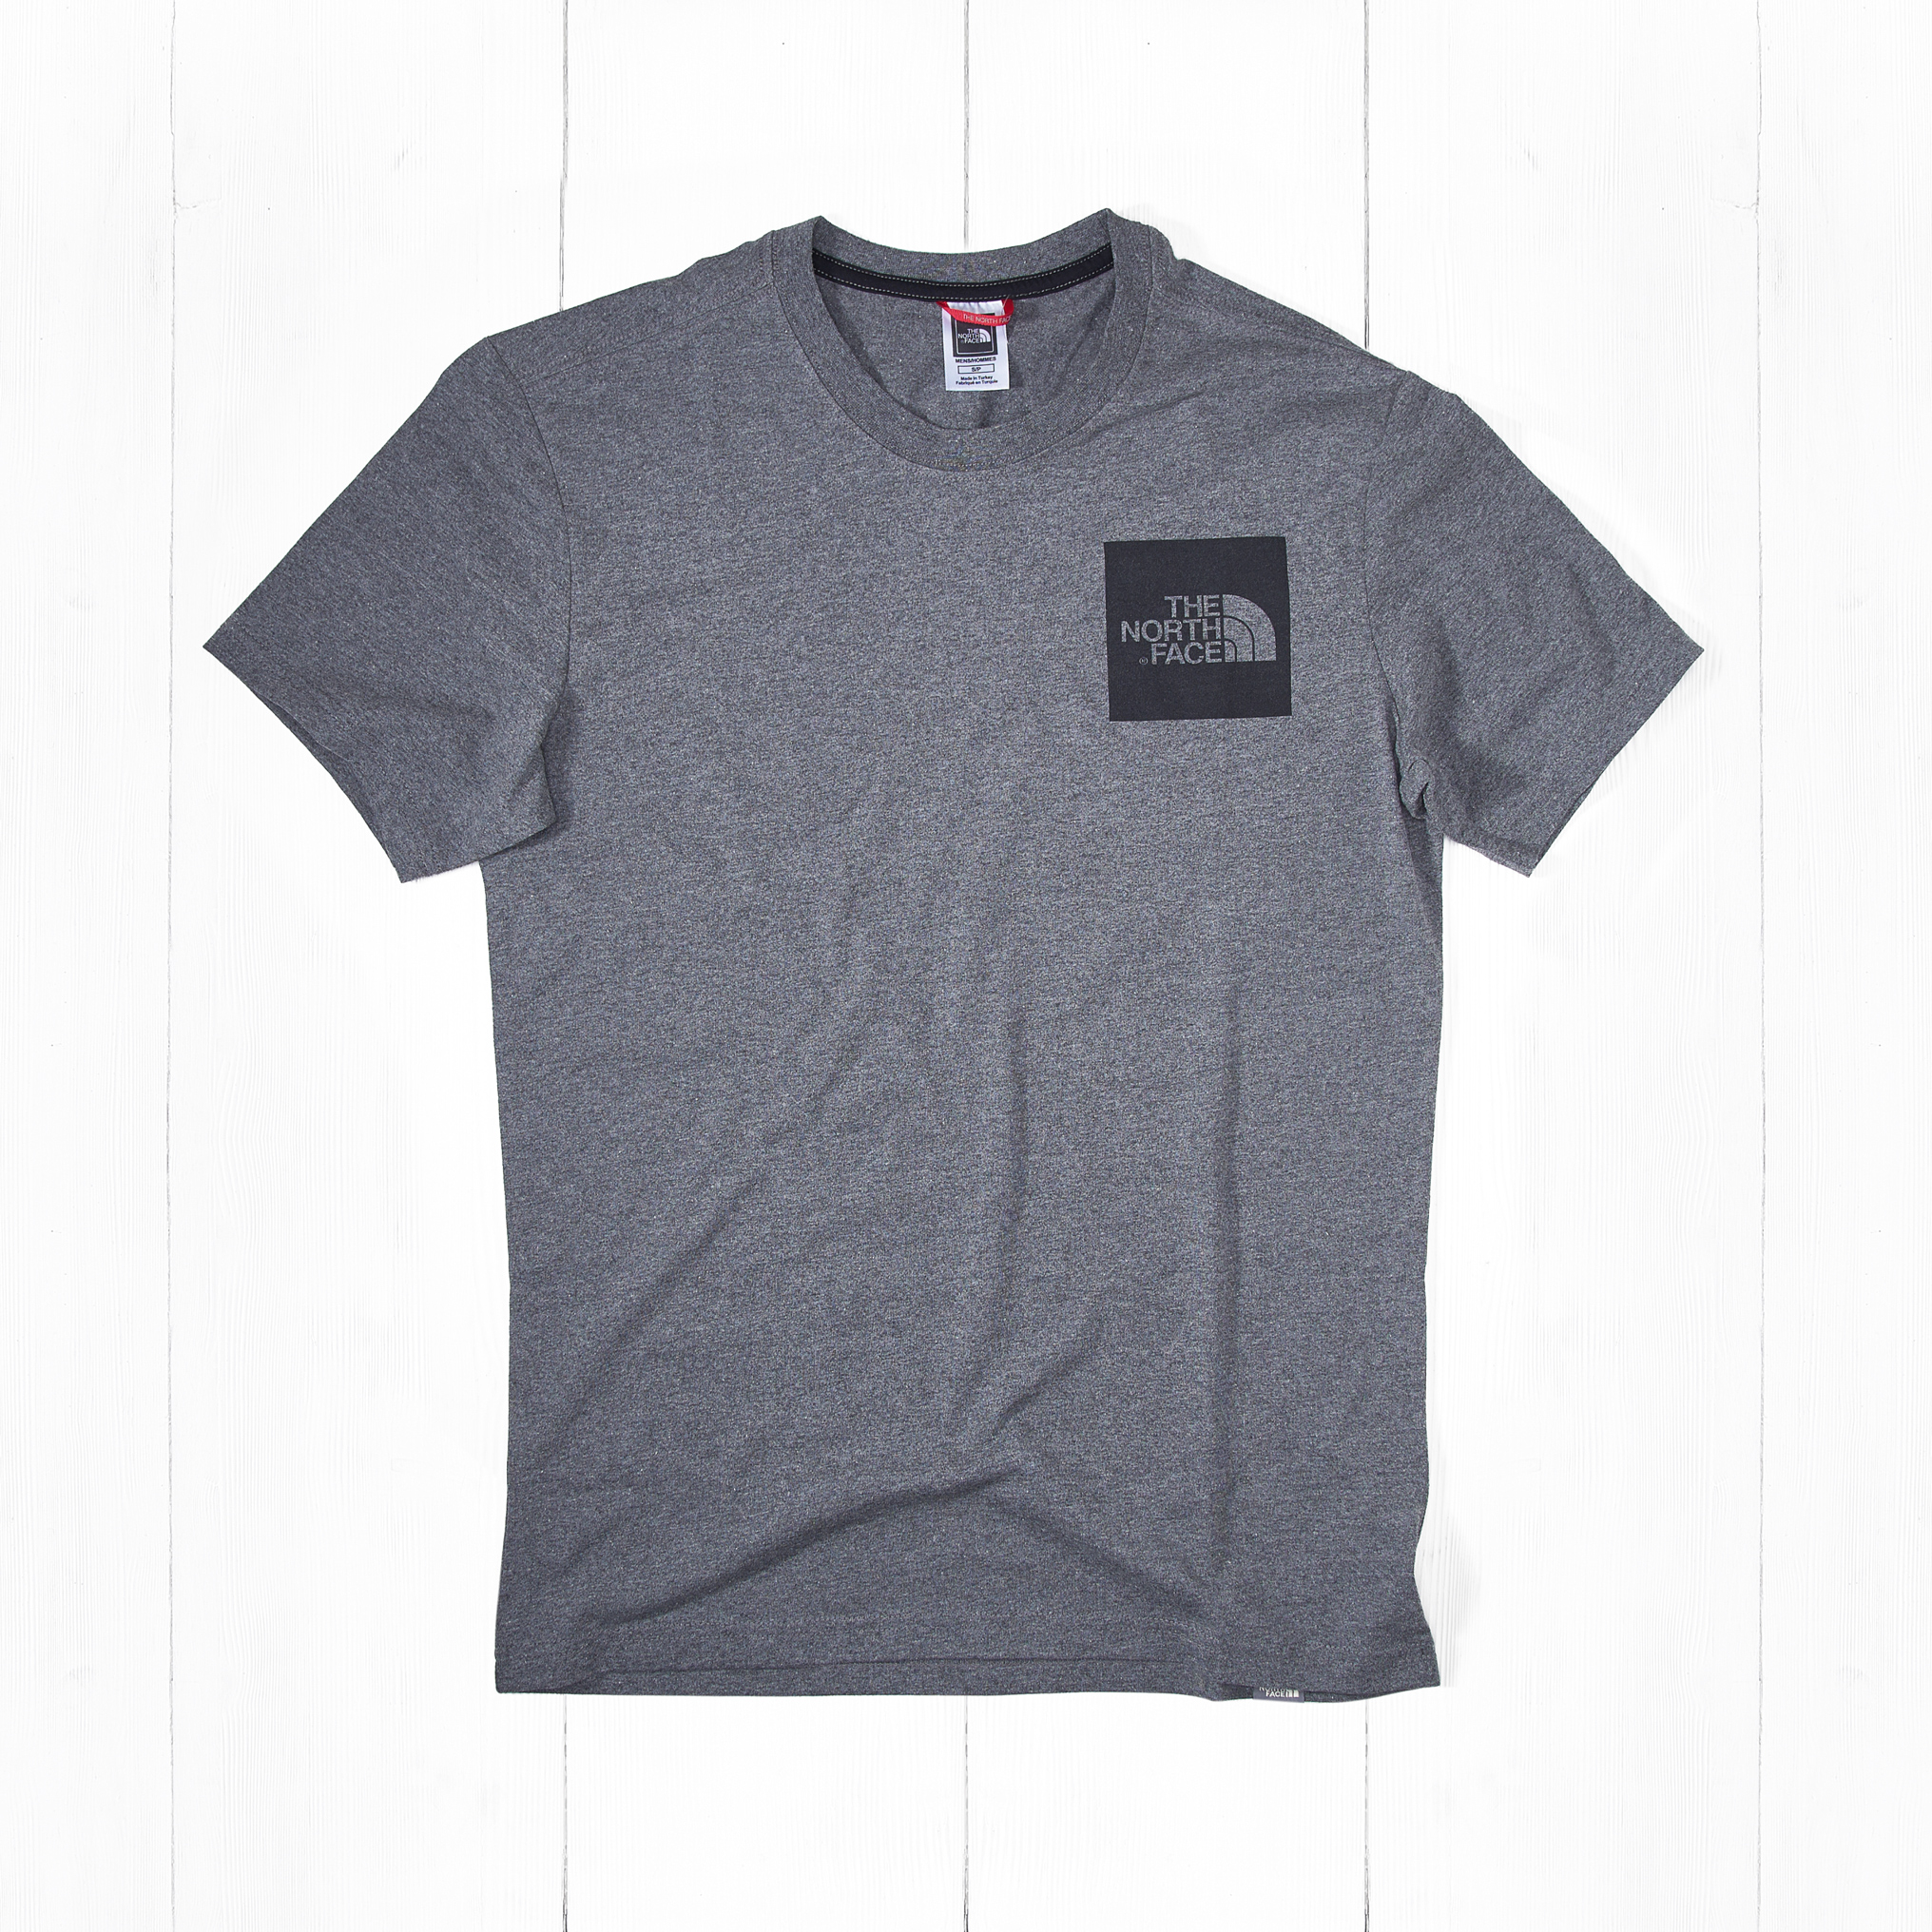 Футболка The North Face S/S FINE Grey Heather